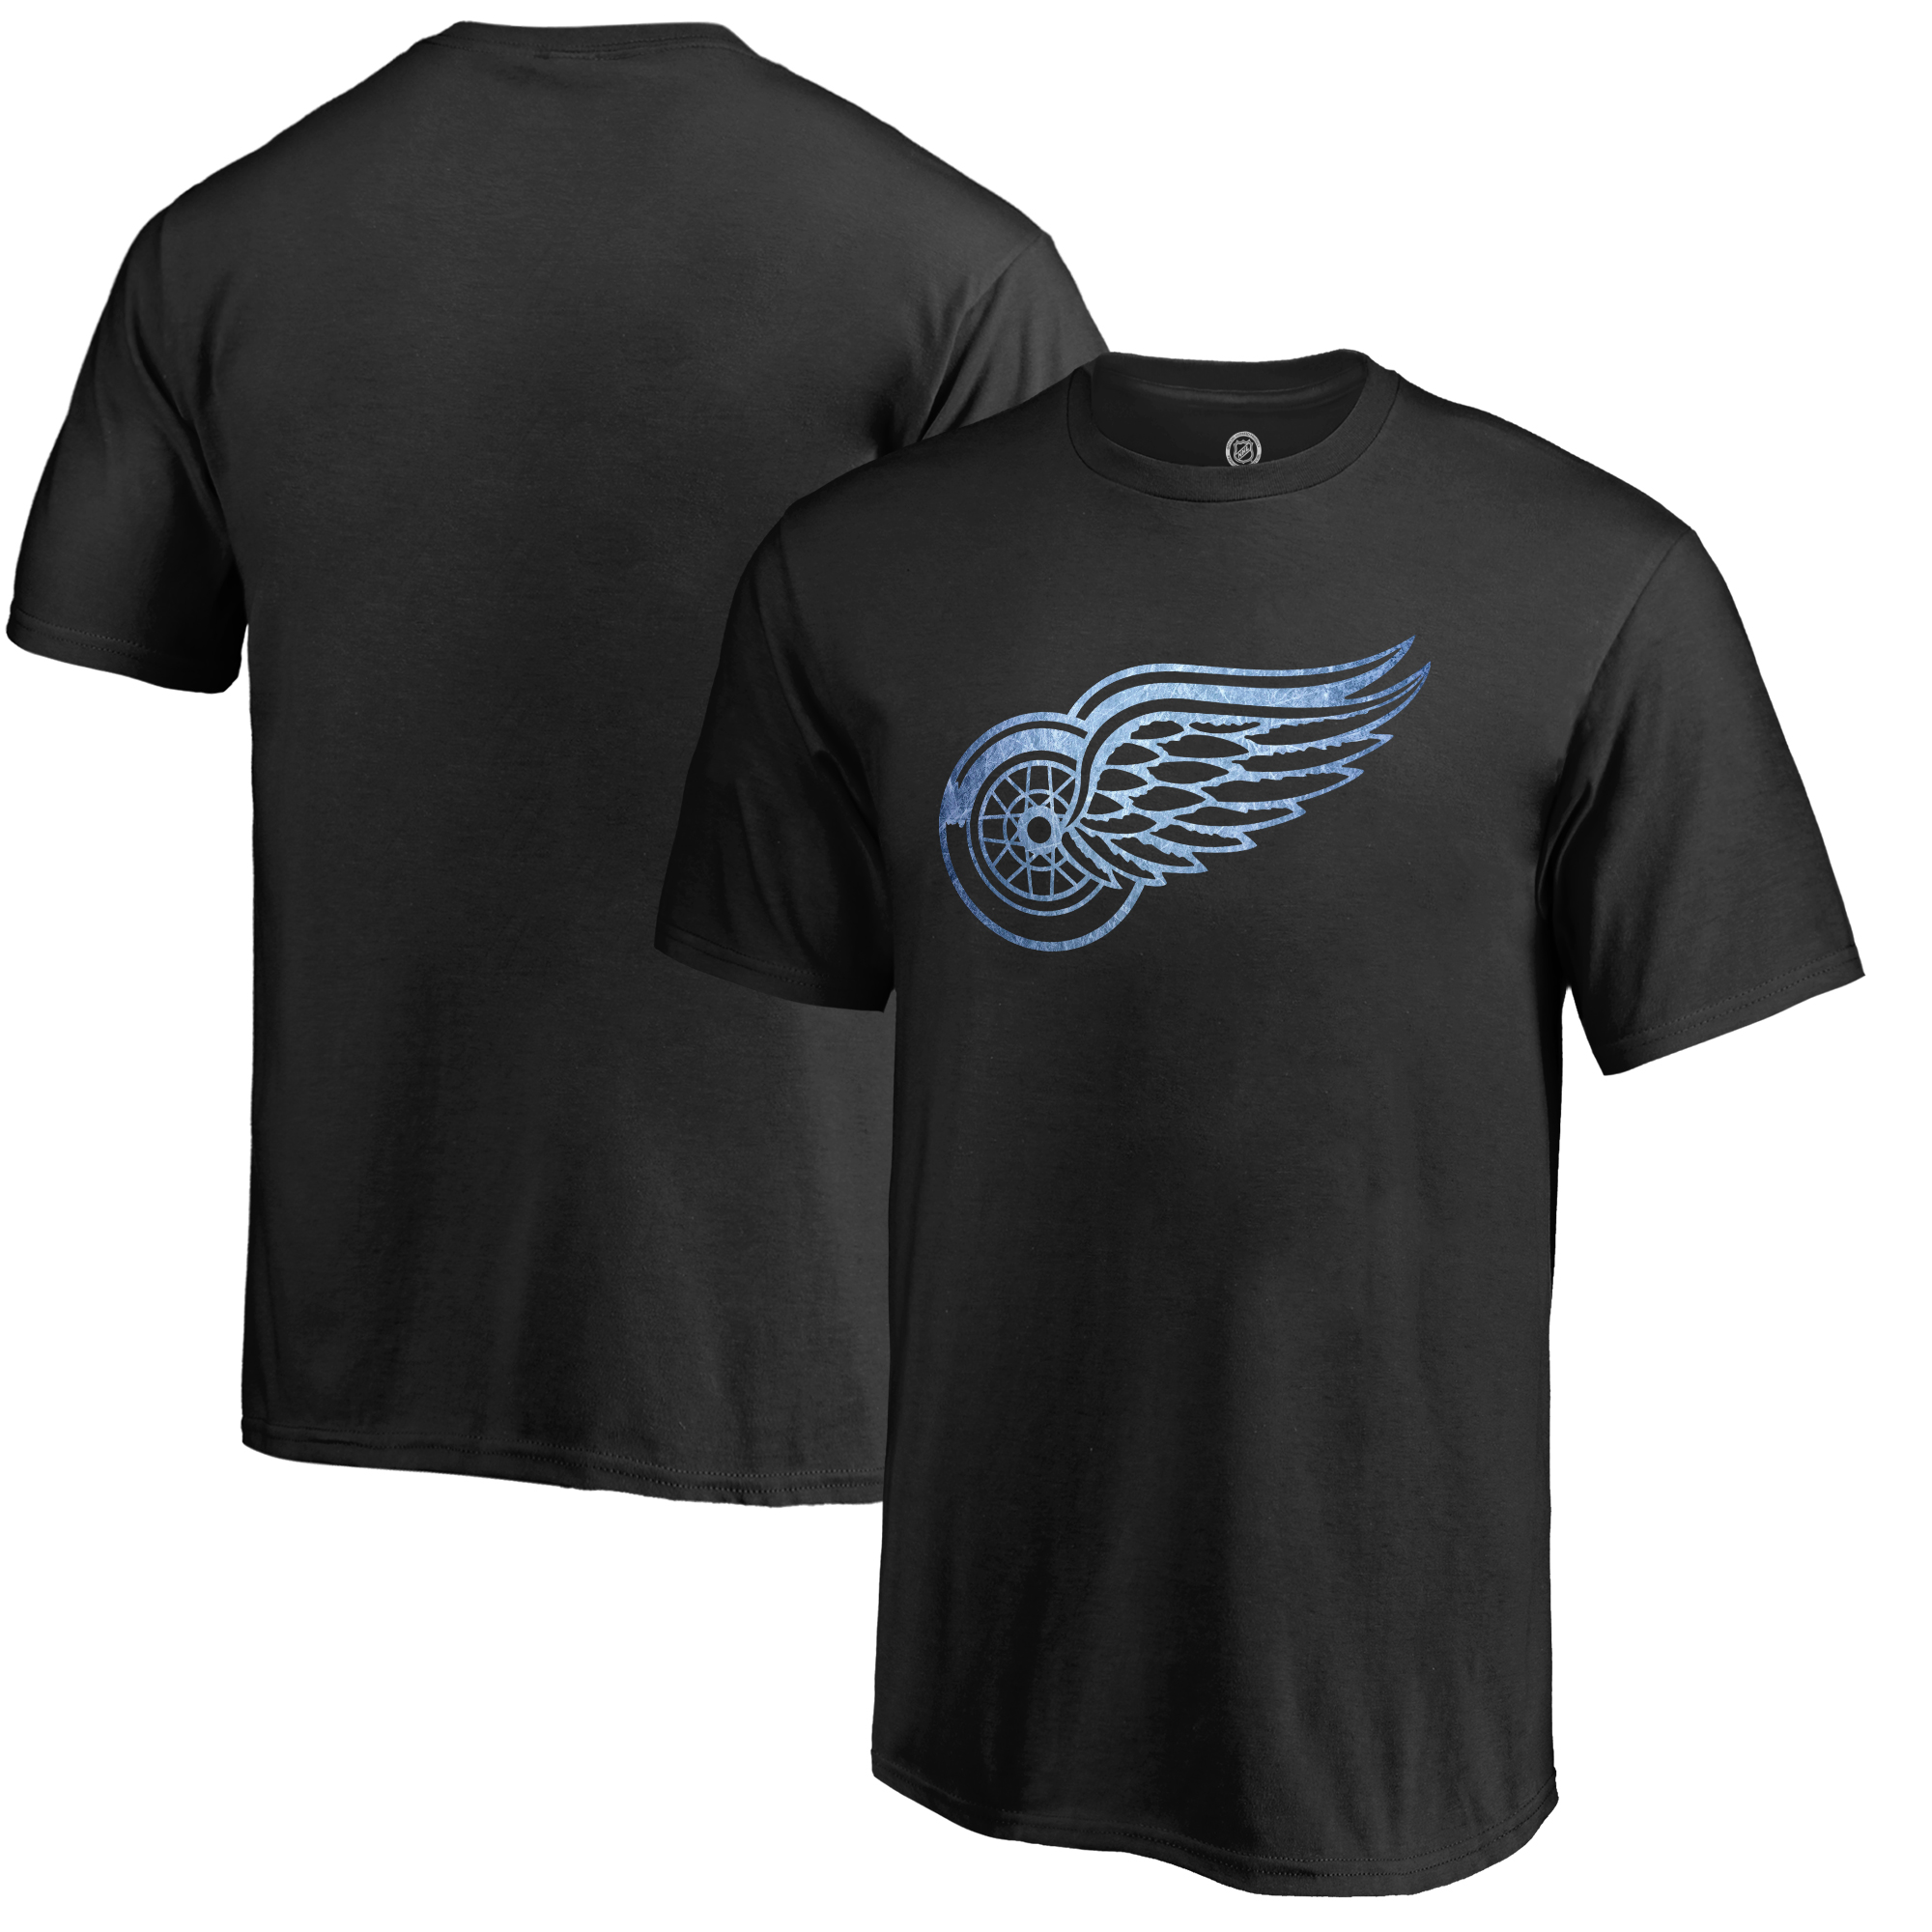 Detroit Red Wings Youth Pond Hockey T-Shirt Black by Football Fanatics/Ruppshirts